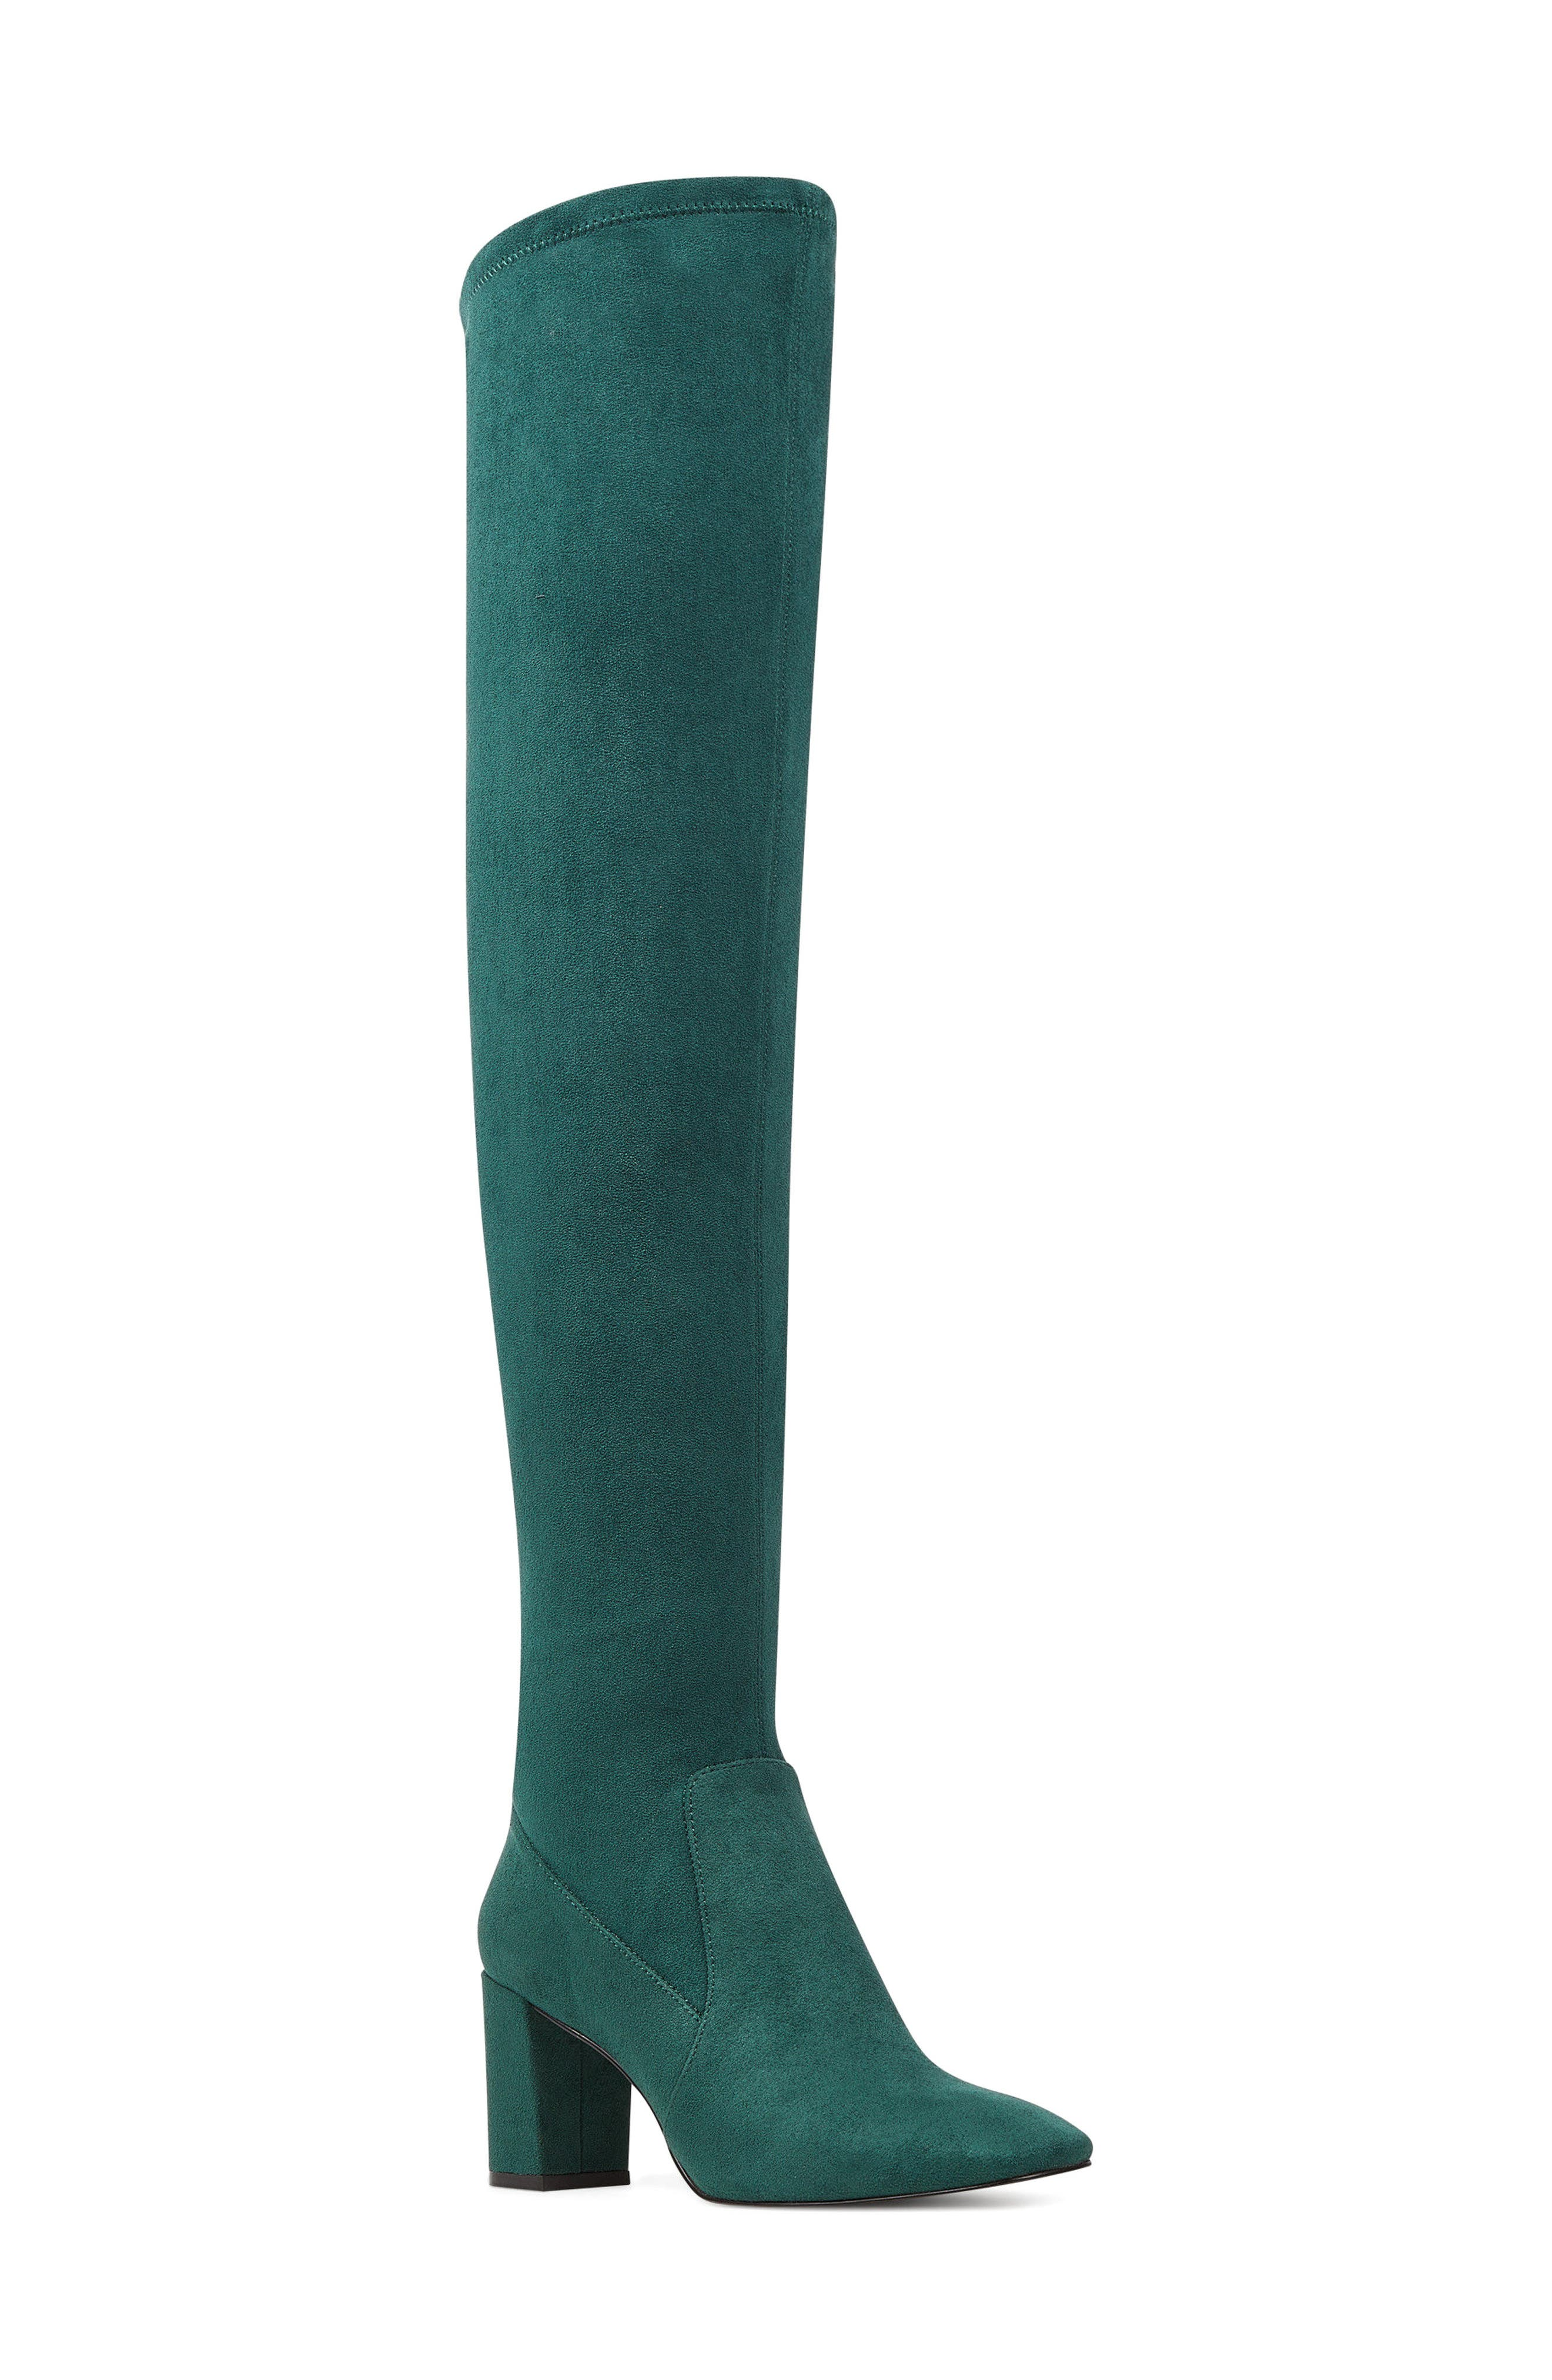 Main Image - Nine West Xperian Over the Knee Boot (Women)